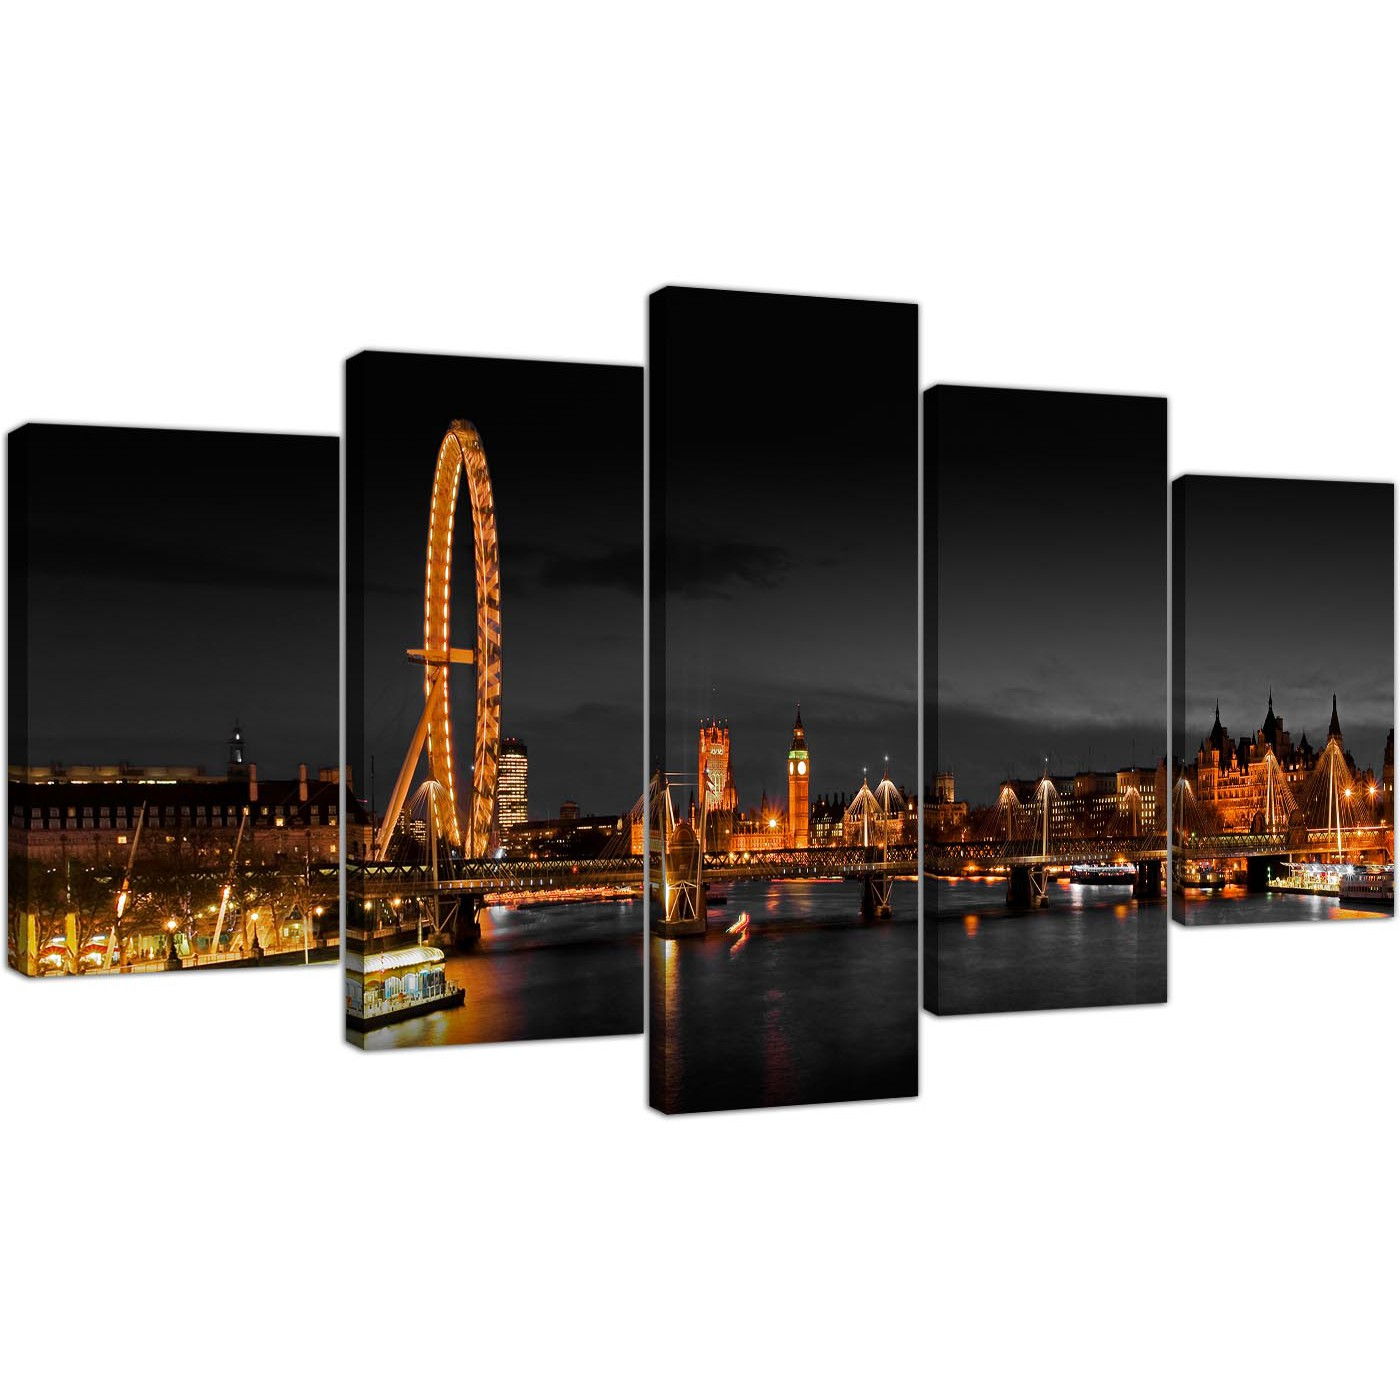 Extra large canvas pictures living room landscape 160cm x 75cm 5186 display gallery item 1